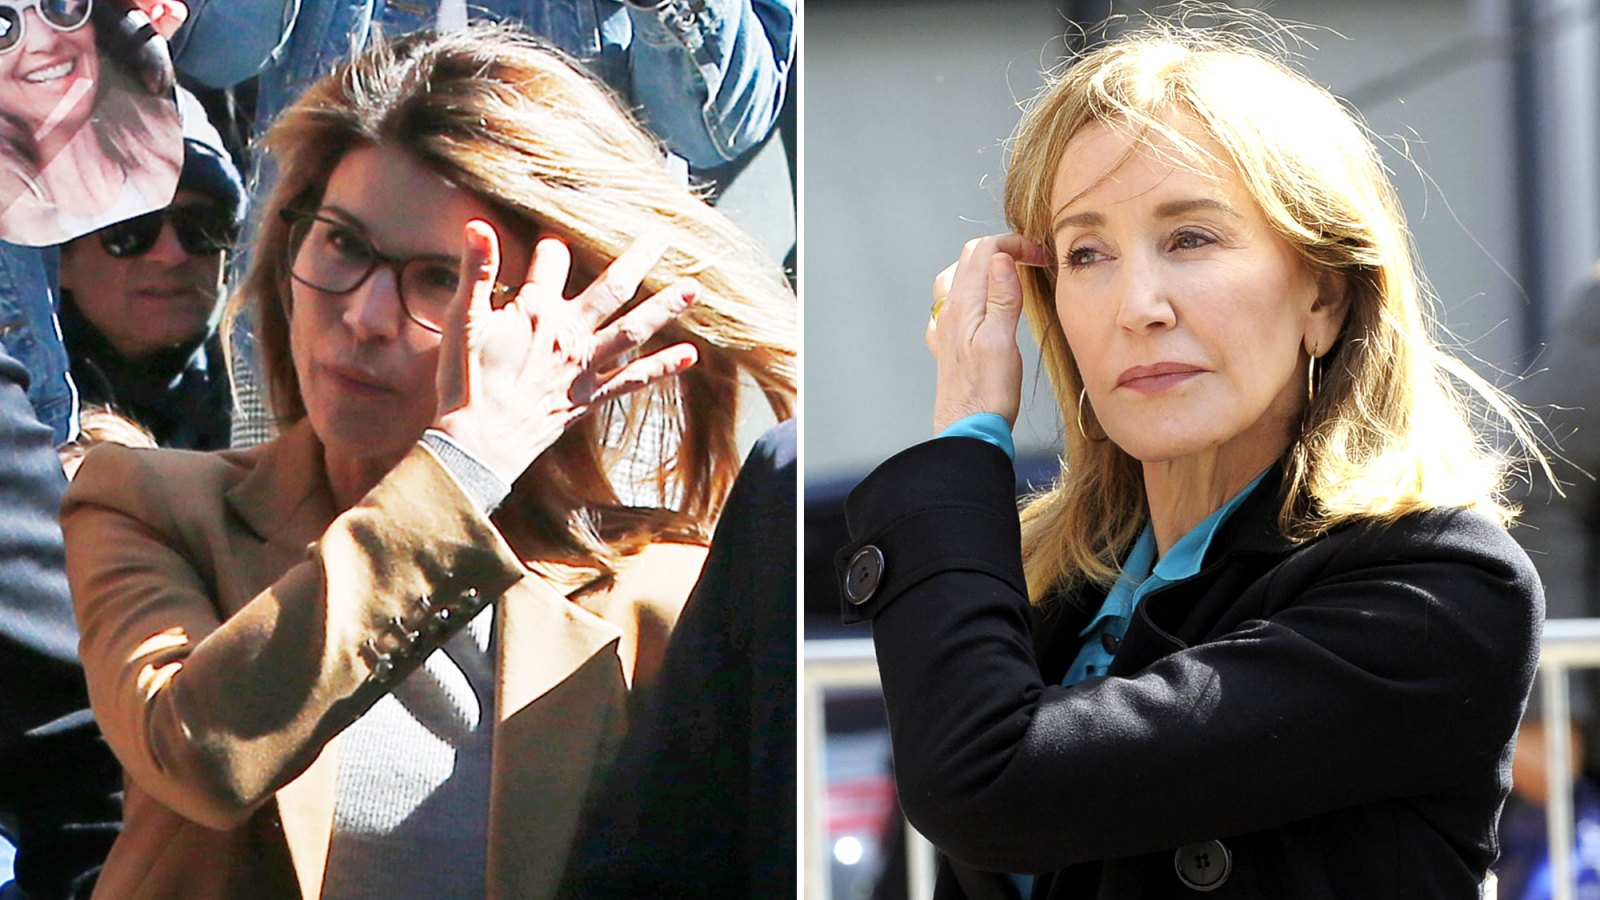 7a17eb4ef08 Lori Loughlin and Felicity Huffman Face Maximum Sentence of 20 Years in  Prison for College Admissions Scandal